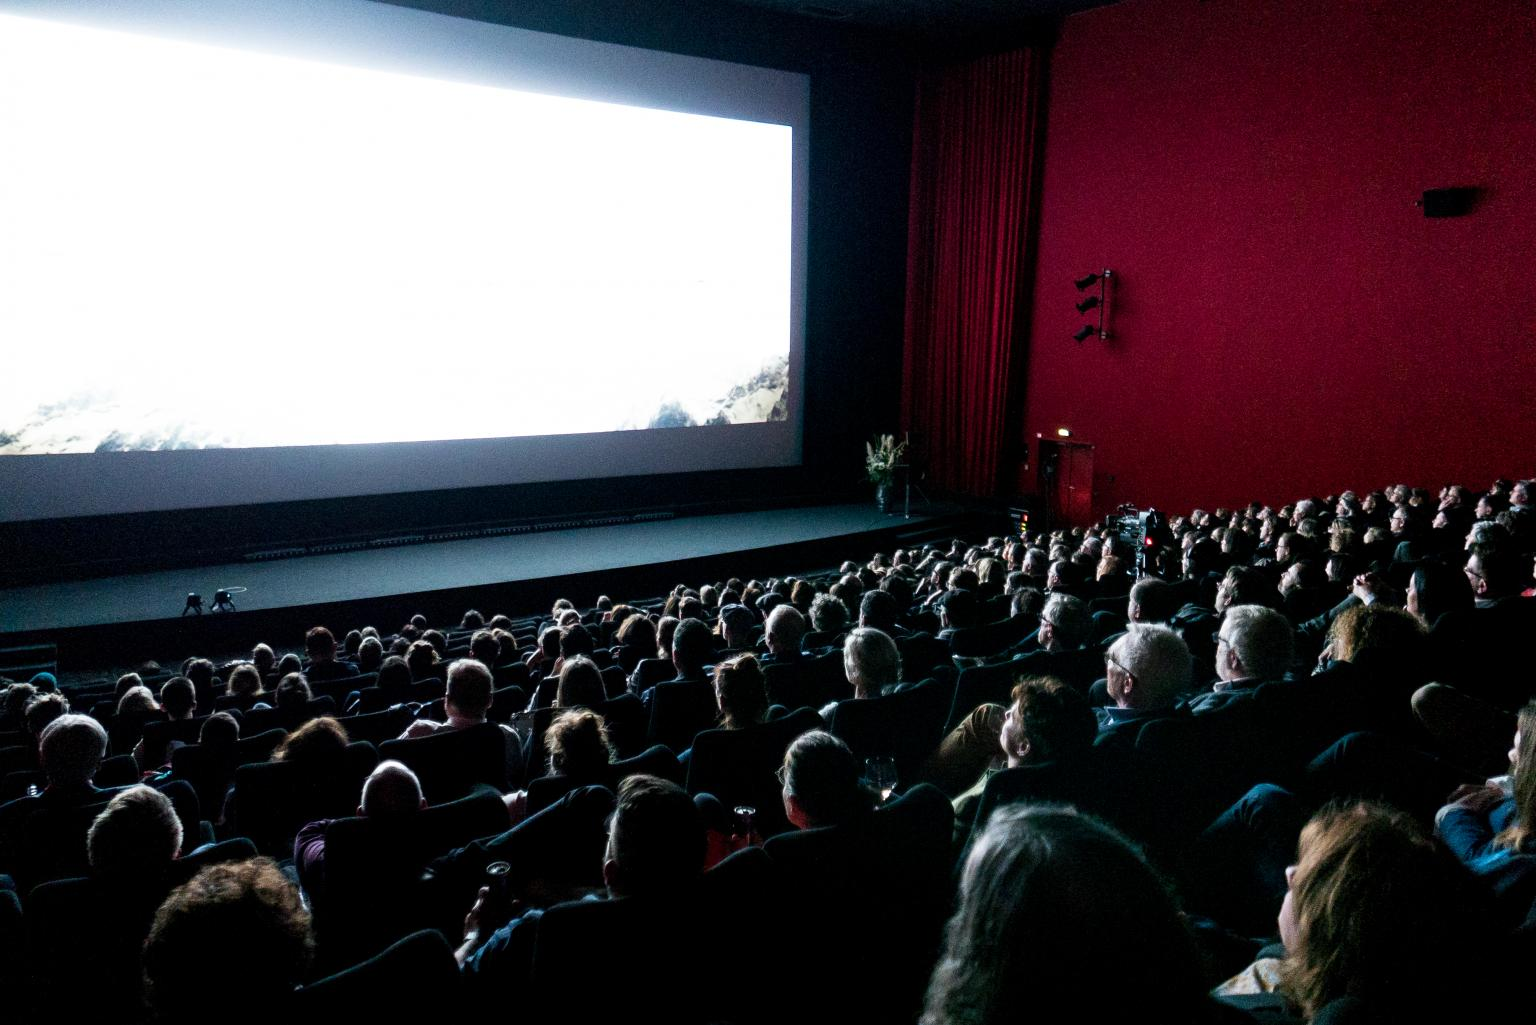 Cinema full of visitors looking to a white screen.